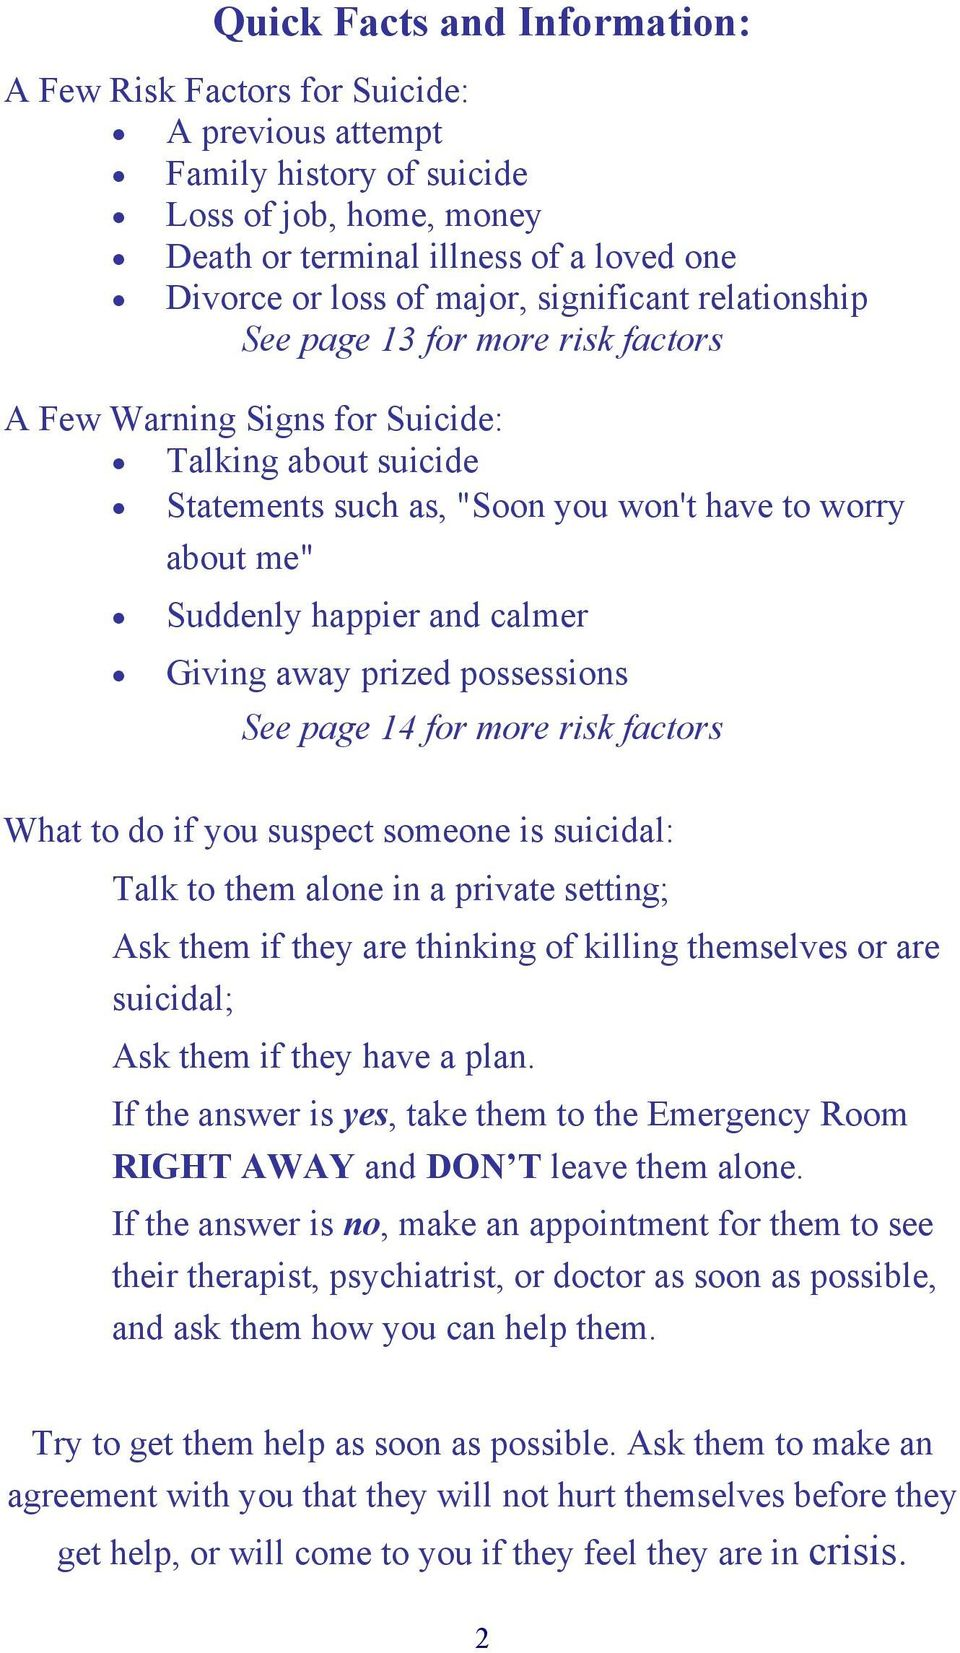 calmer Giving away prized possessions See page 14 for more risk factors What to do if you suspect someone is suicidal: Talk to them alone in a private setting; Ask them if they are thinking of